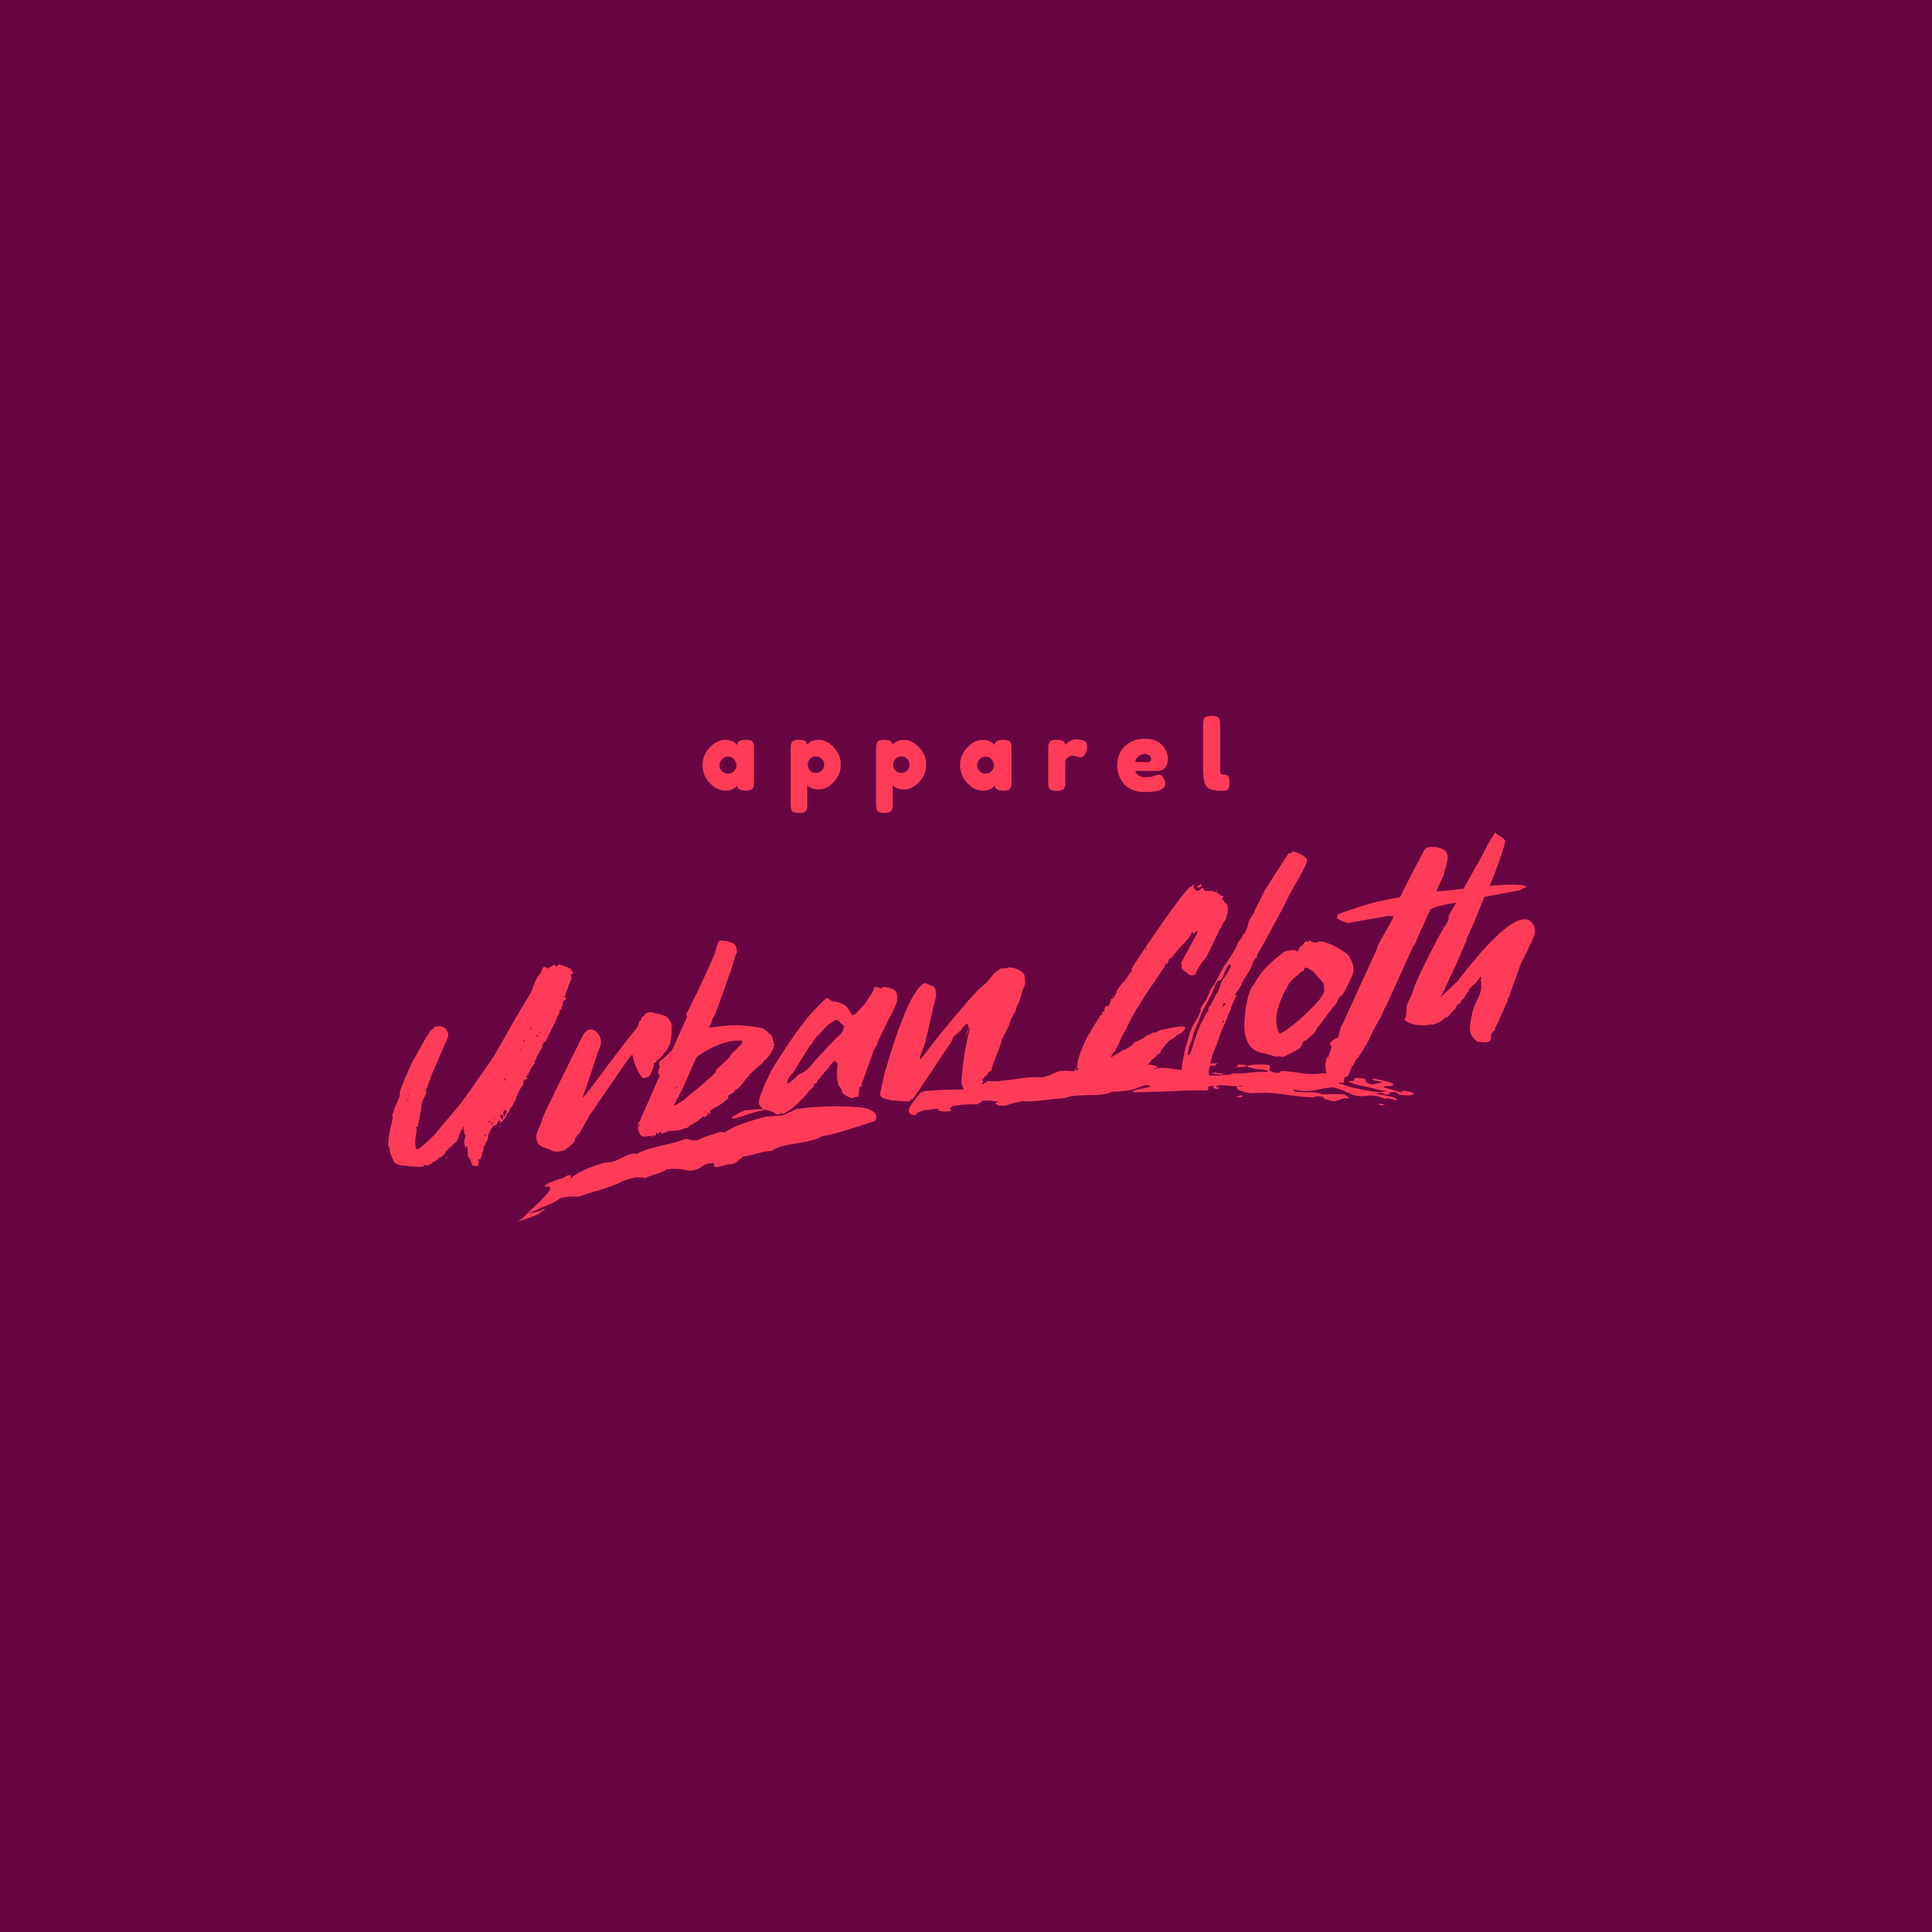 Urban Cloth